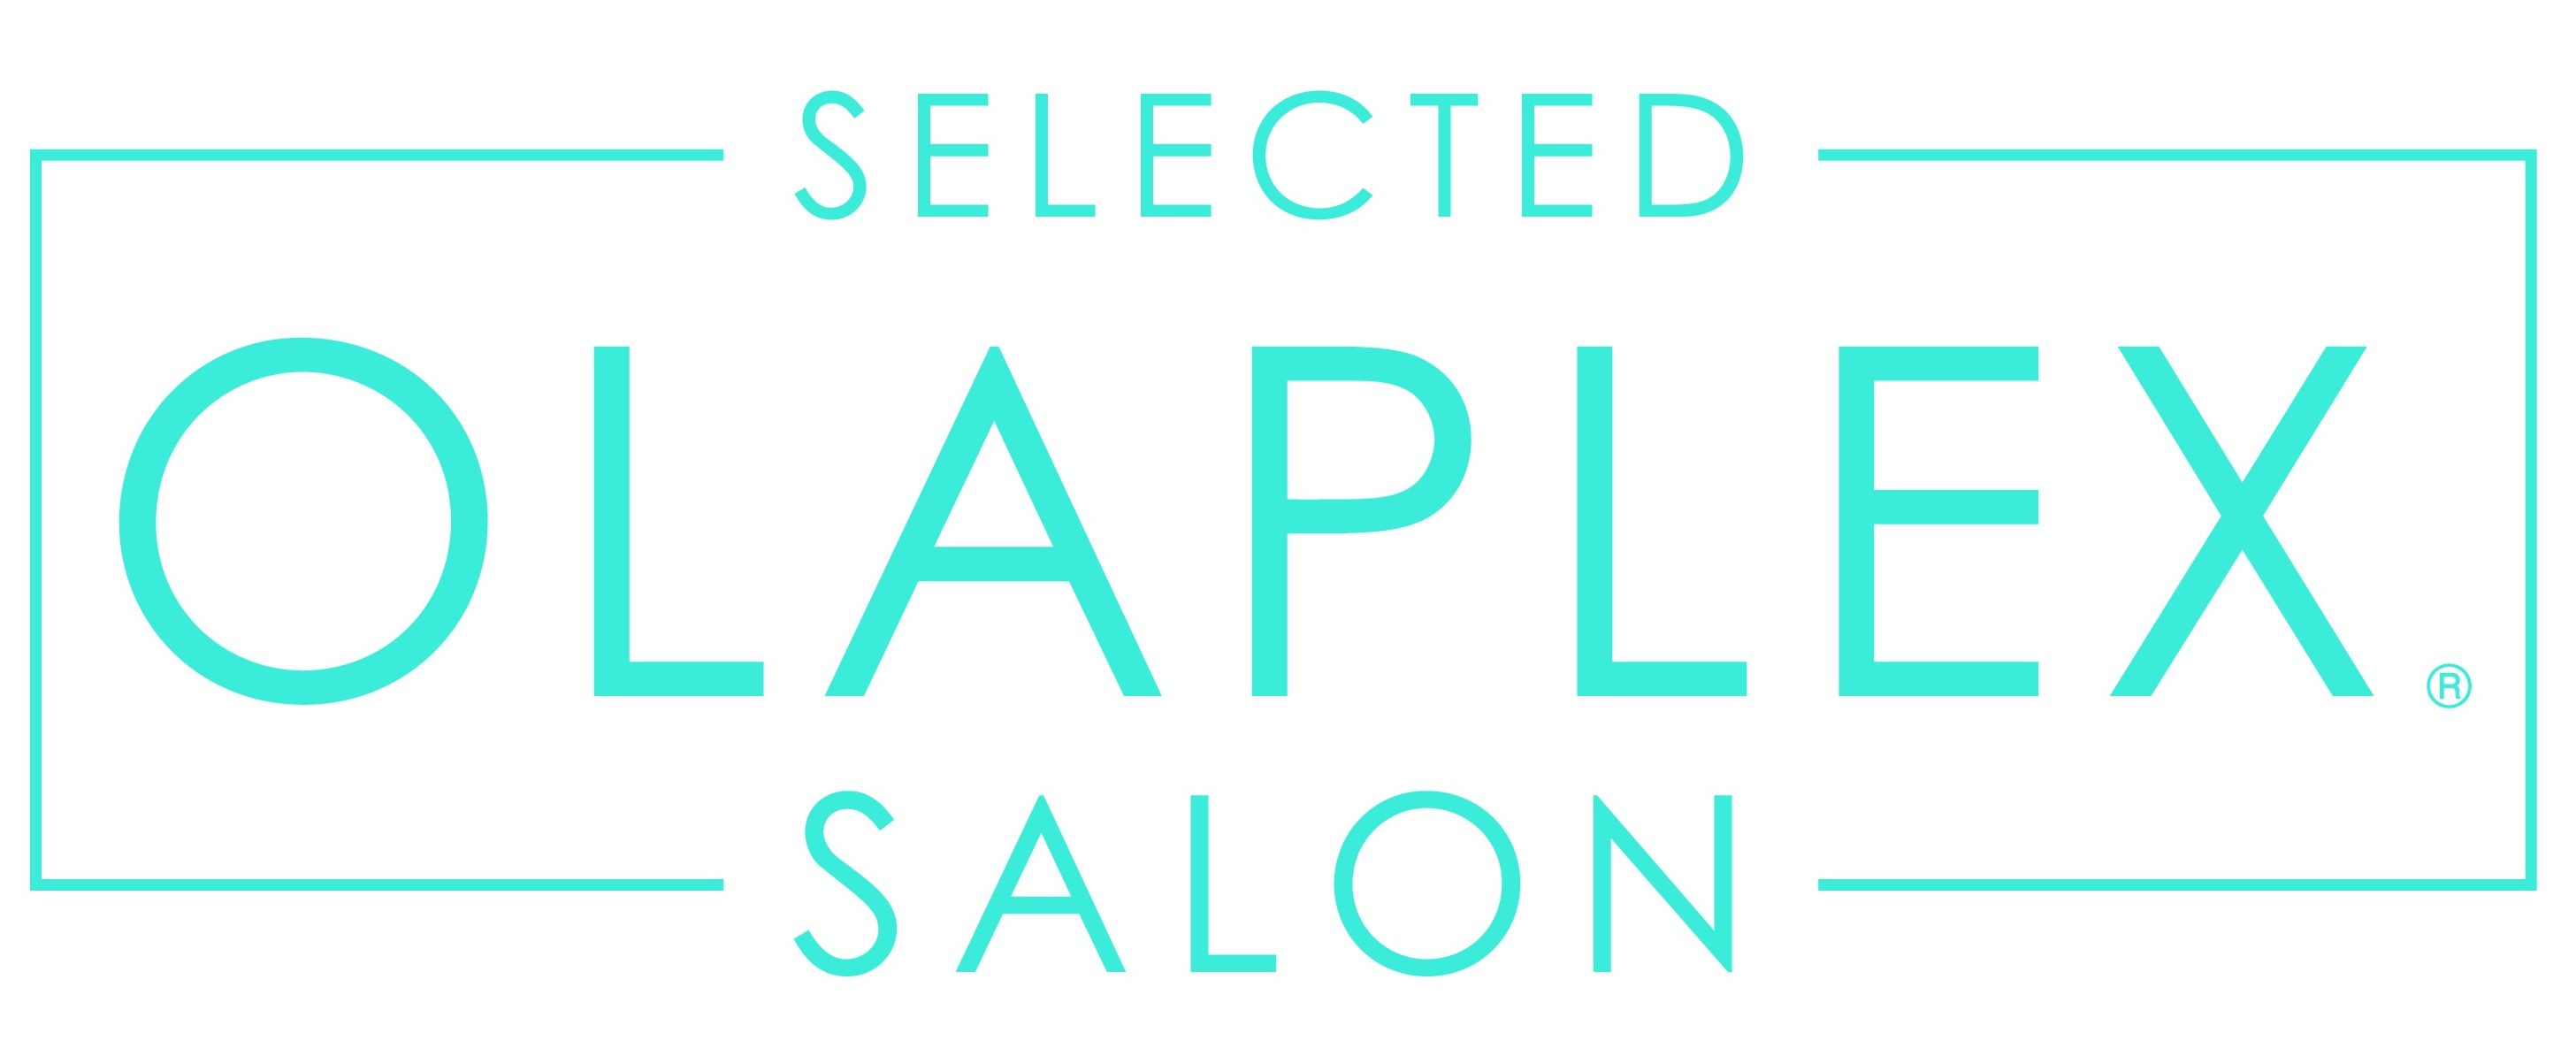 Selected Olaplex Salon